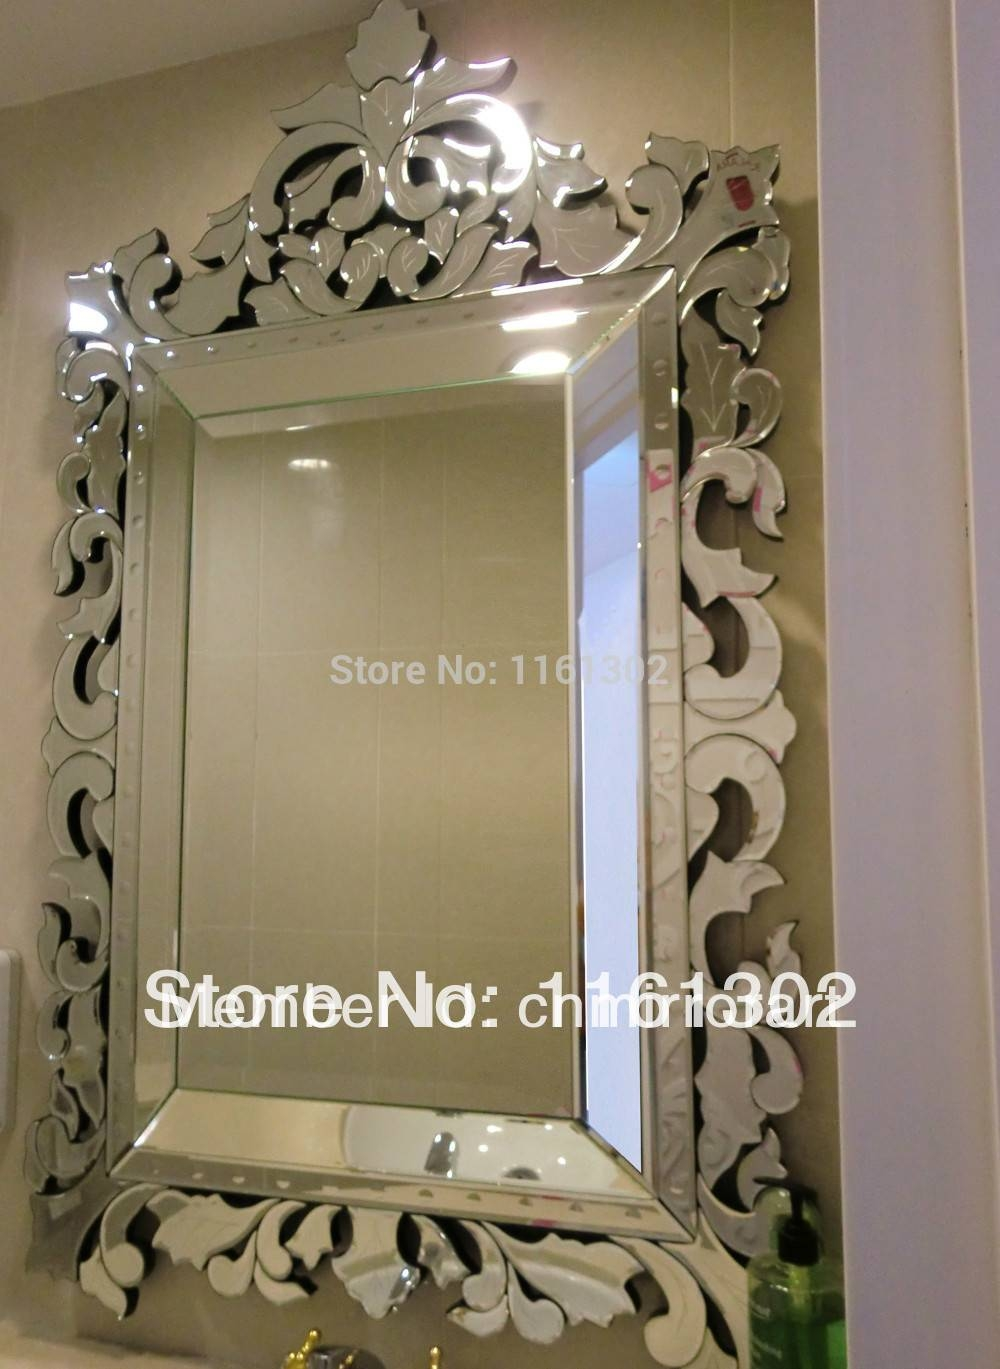 Bathroom Venetian Mirror Promotion-Shop For Promotional Bathroom pertaining to Venetian Bathroom Mirrors (Image 6 of 25)